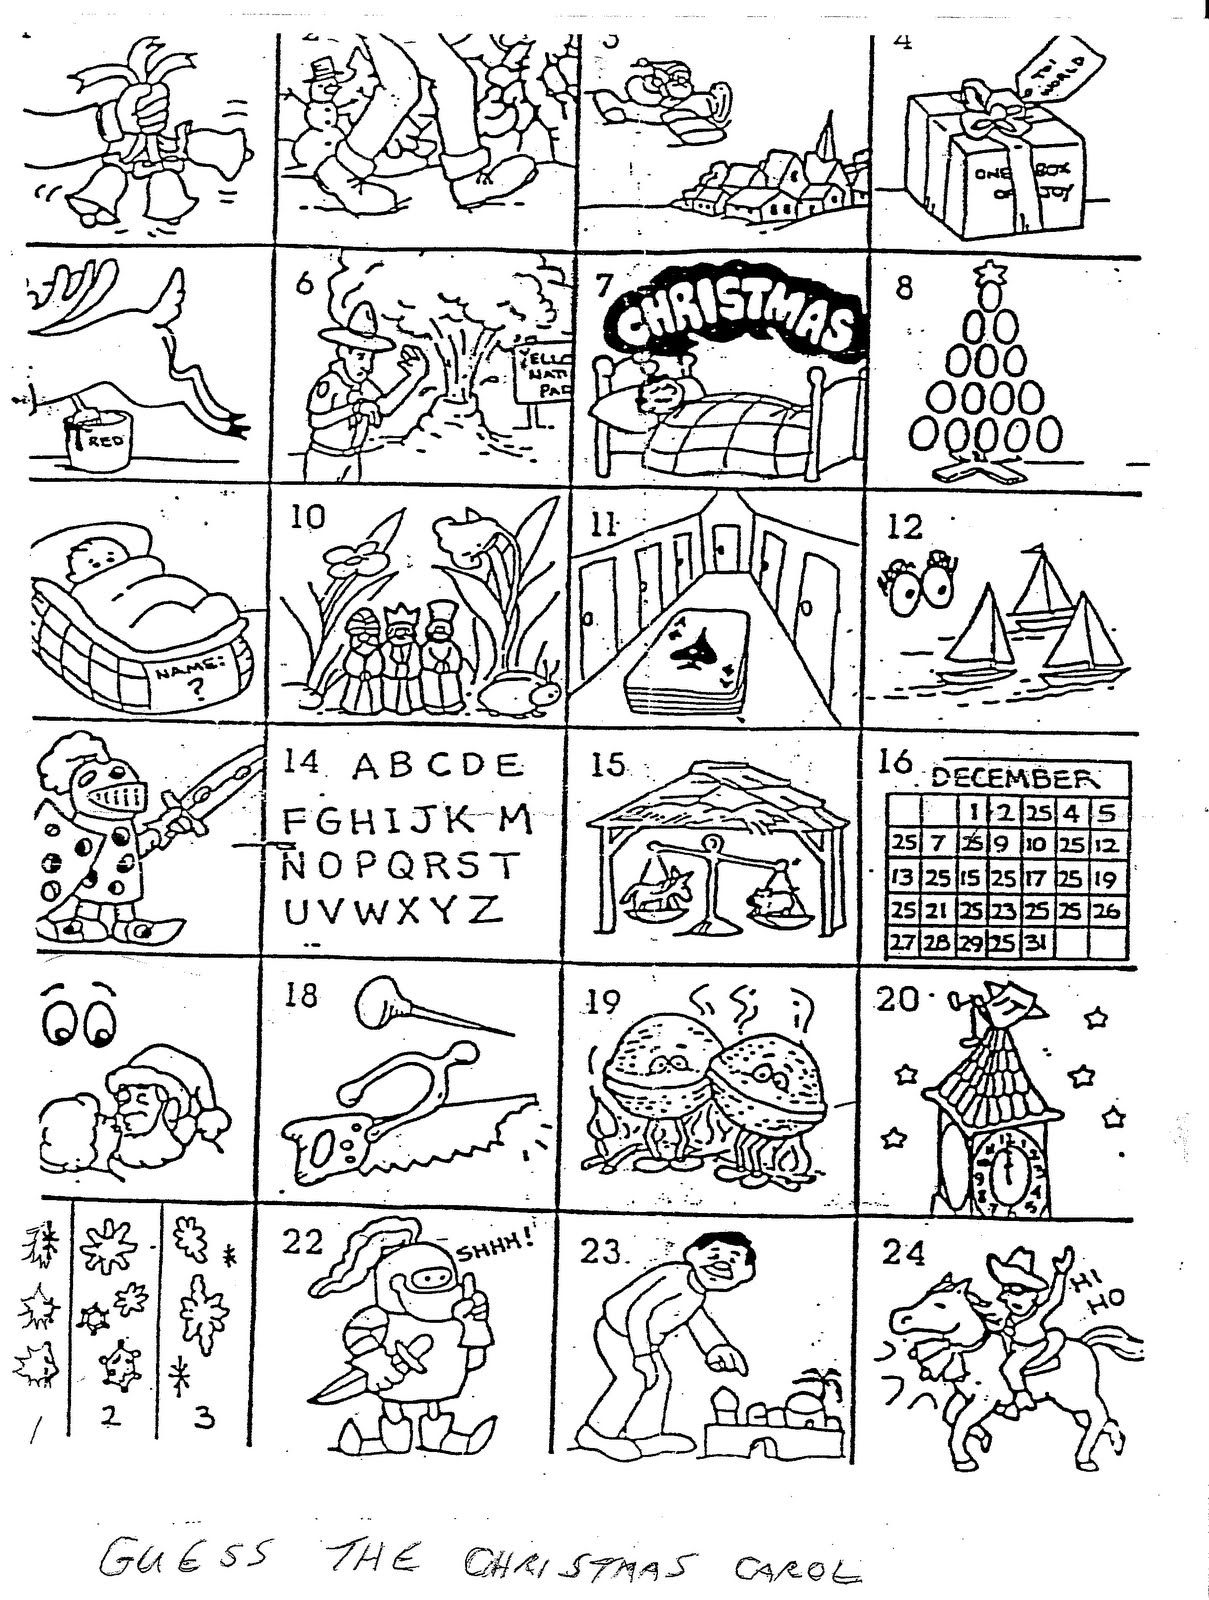 Can You Name The Christmas Carol In Each Box